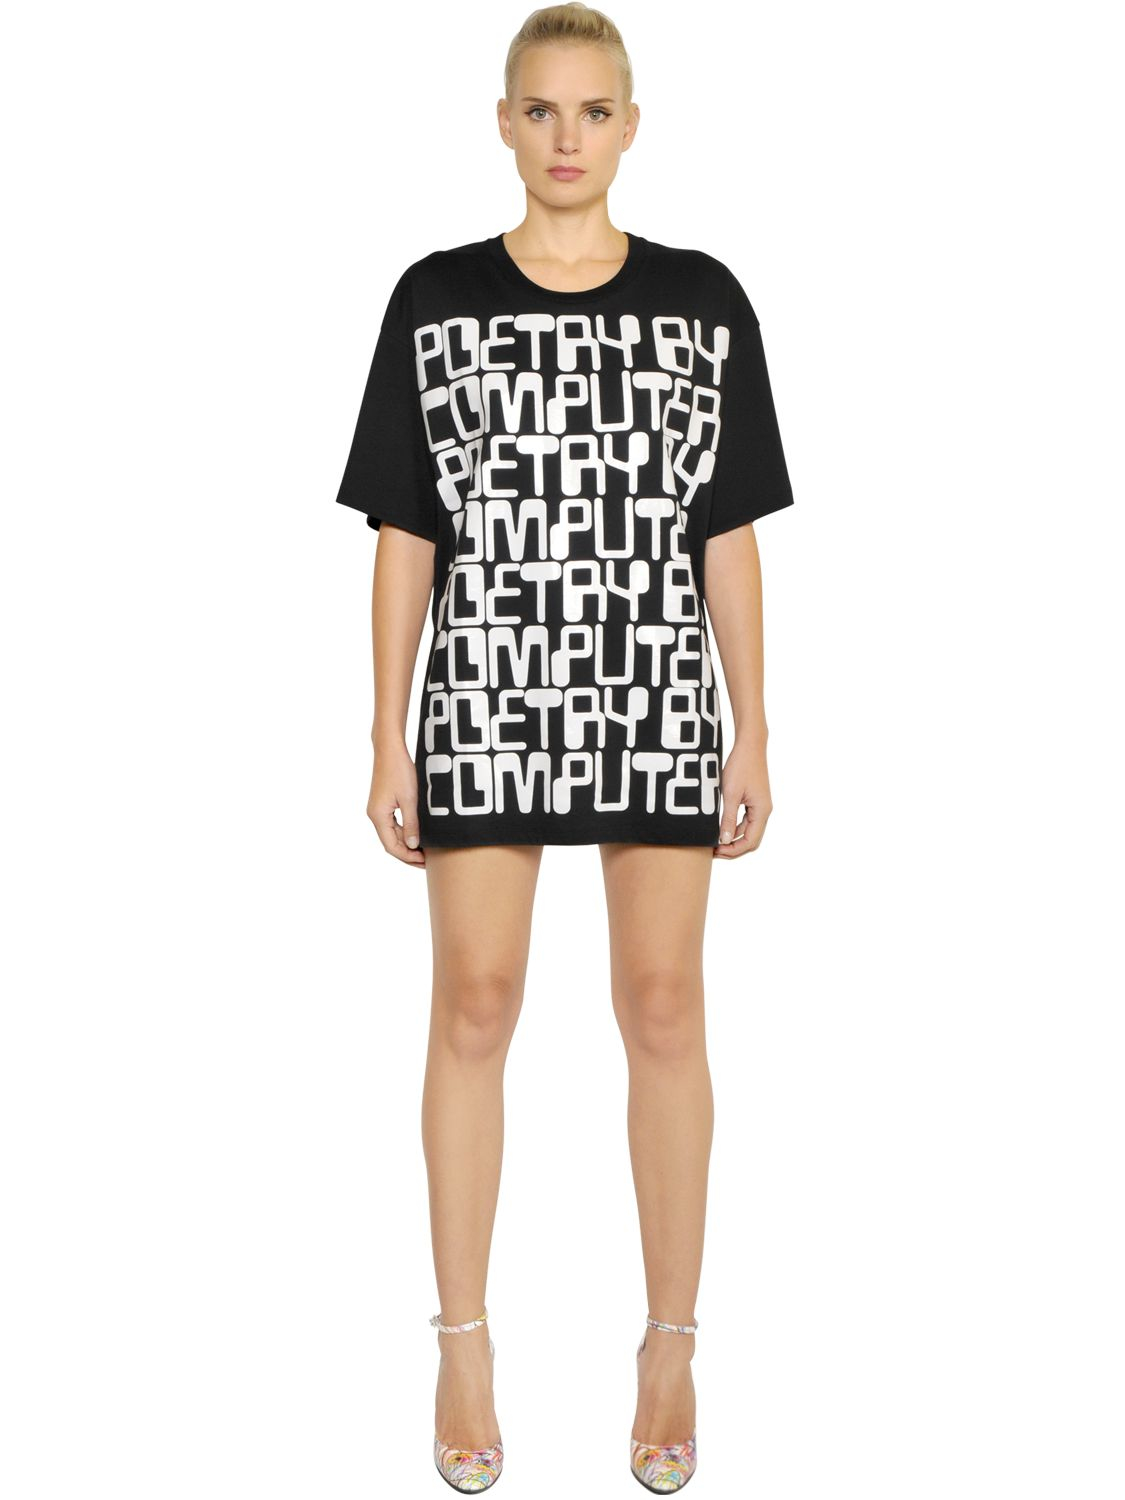 Black t shirt jersey dress - Gallery Previously Sold At Luisa Via Roma Women S T Shirt Dresses